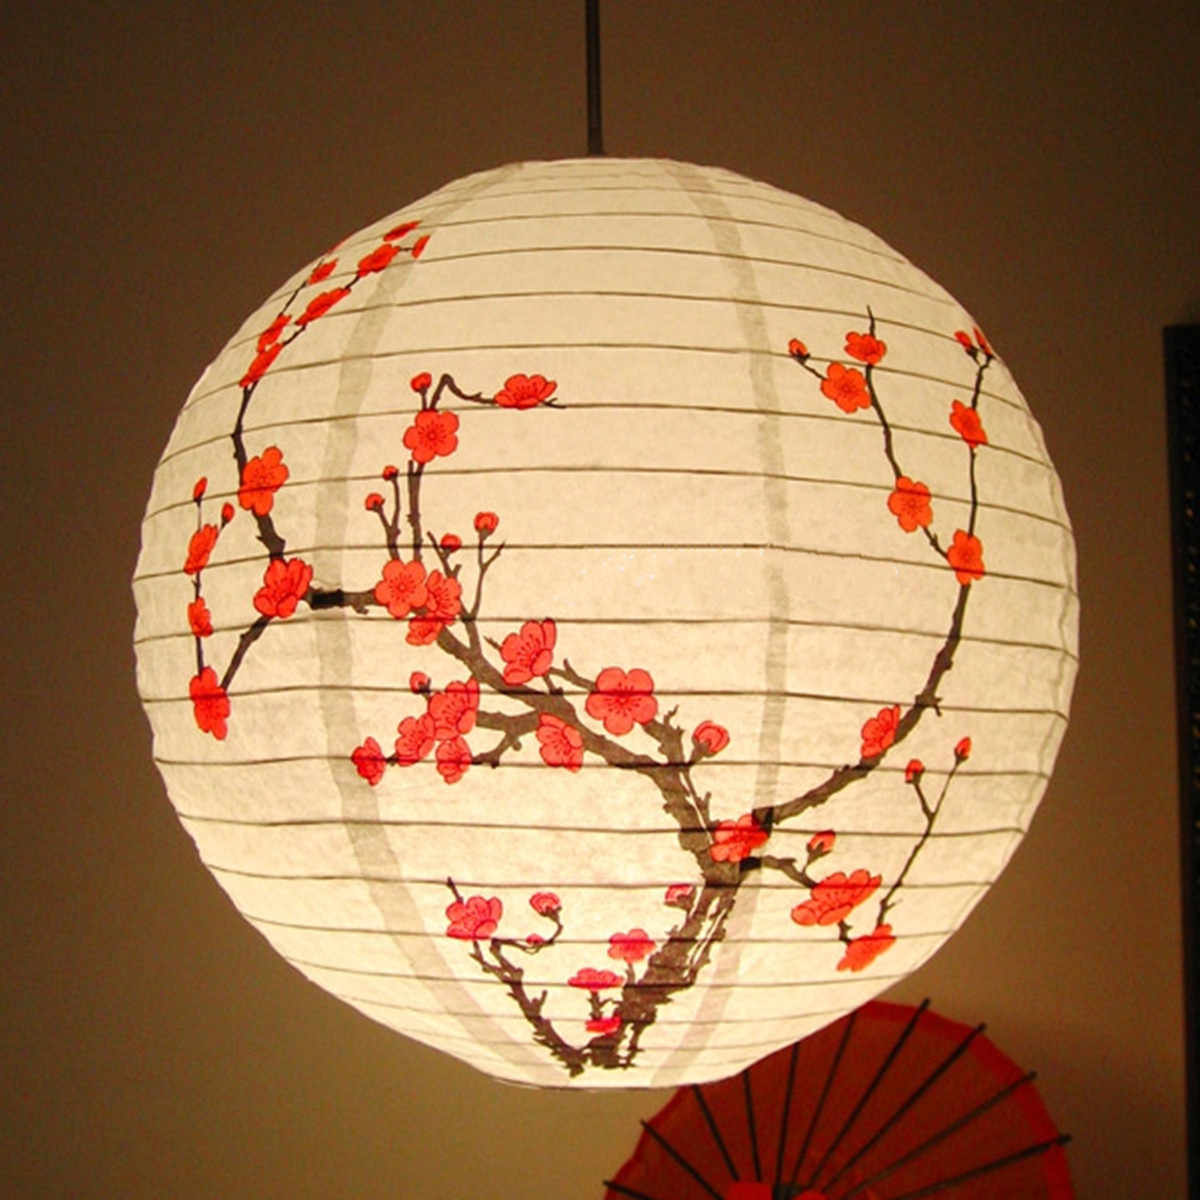 35cm Plum Blossom Round Paper Lantern Lamp Shade Chinese Oriental Style Light Restaurant Wedding Party Home Decor Gifts